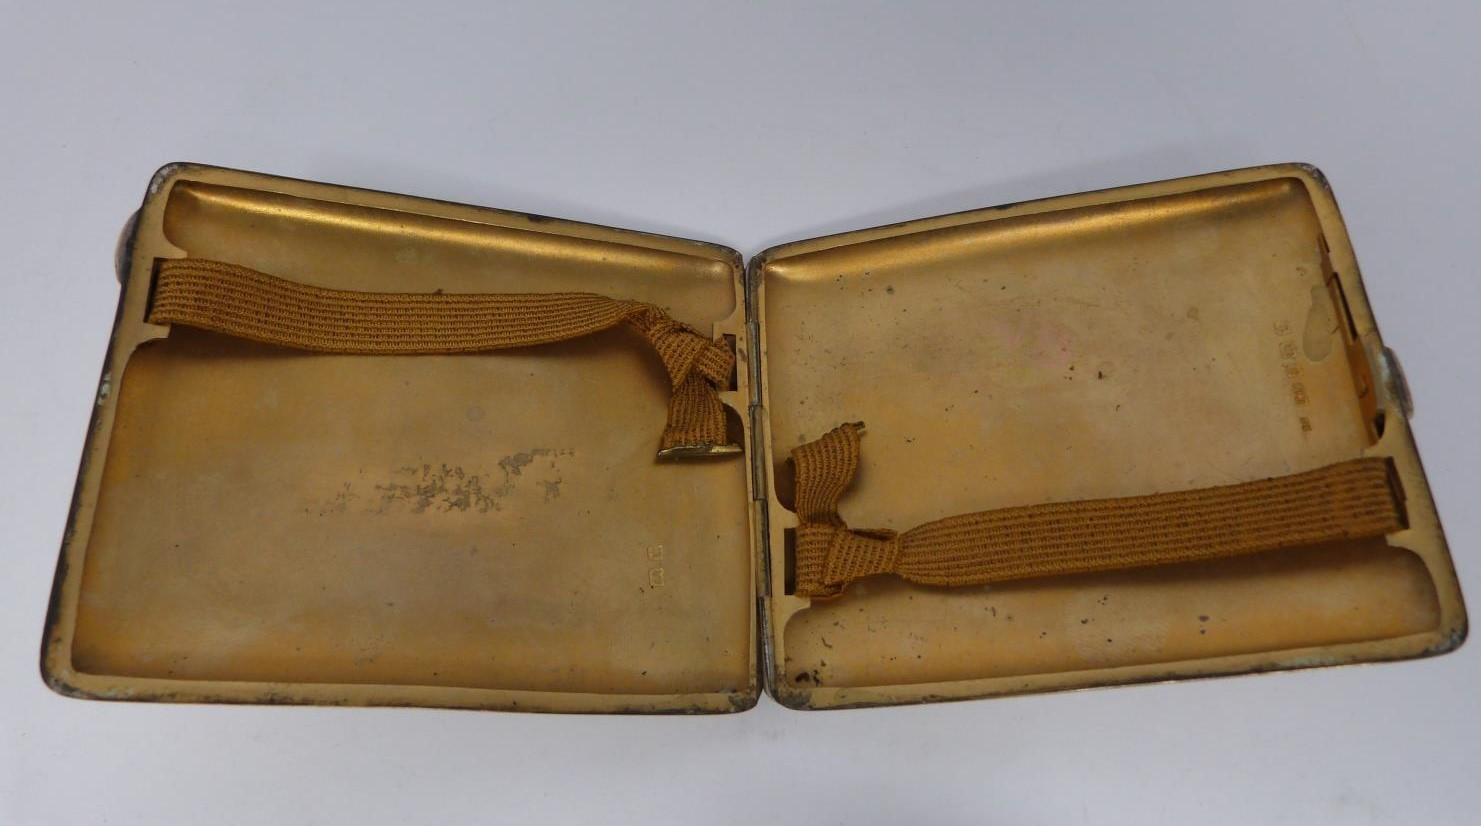 Three monogrammed silver cigarette cases, large case, birmingham 1920, Charles S Green & Co Ltd. - Image 6 of 10